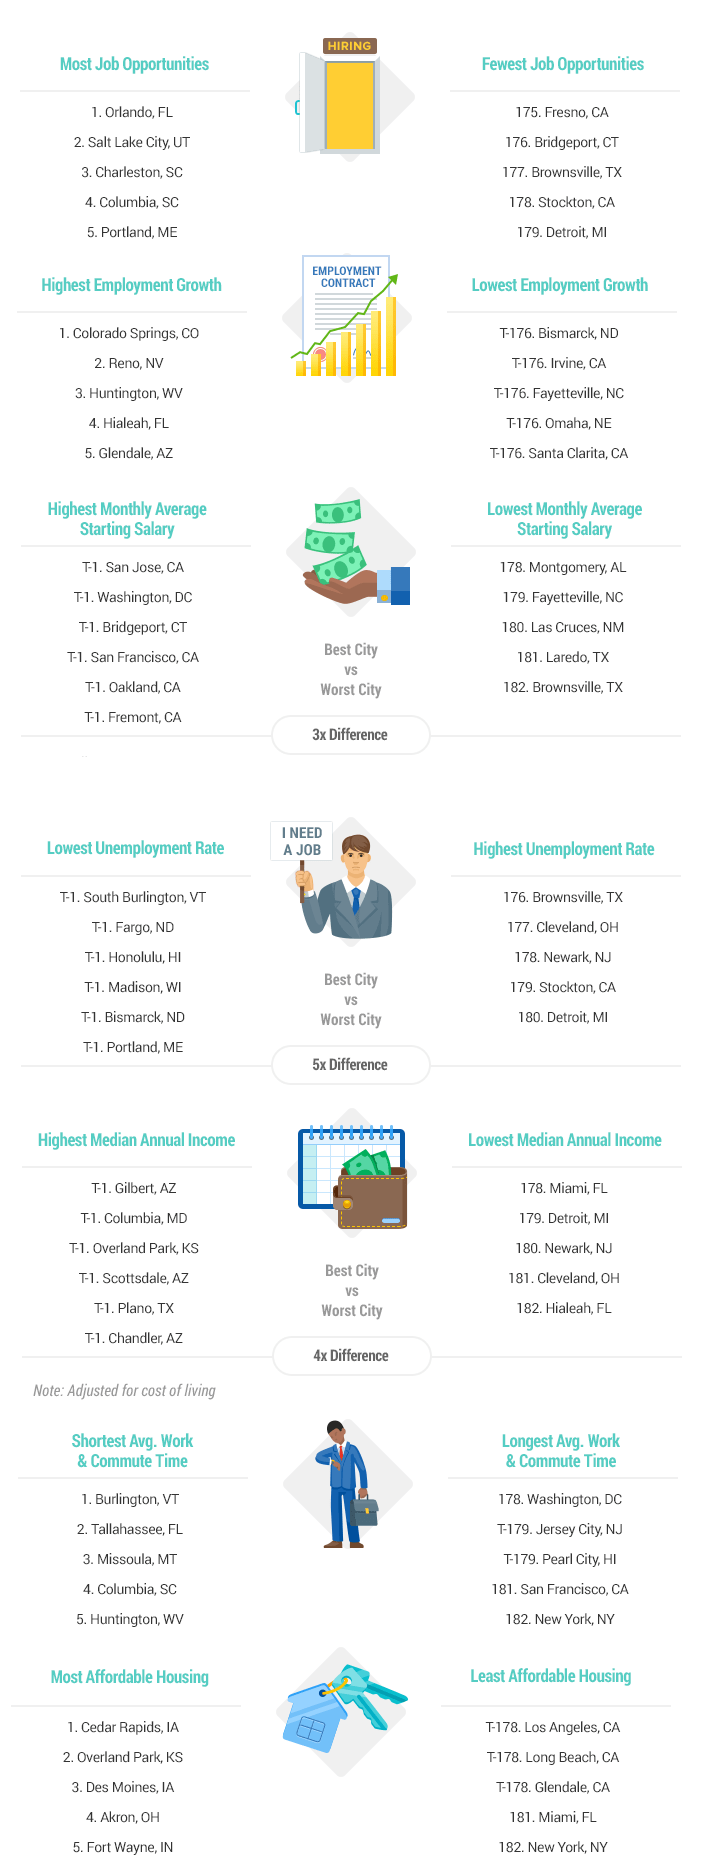 Best Cities for Jobs